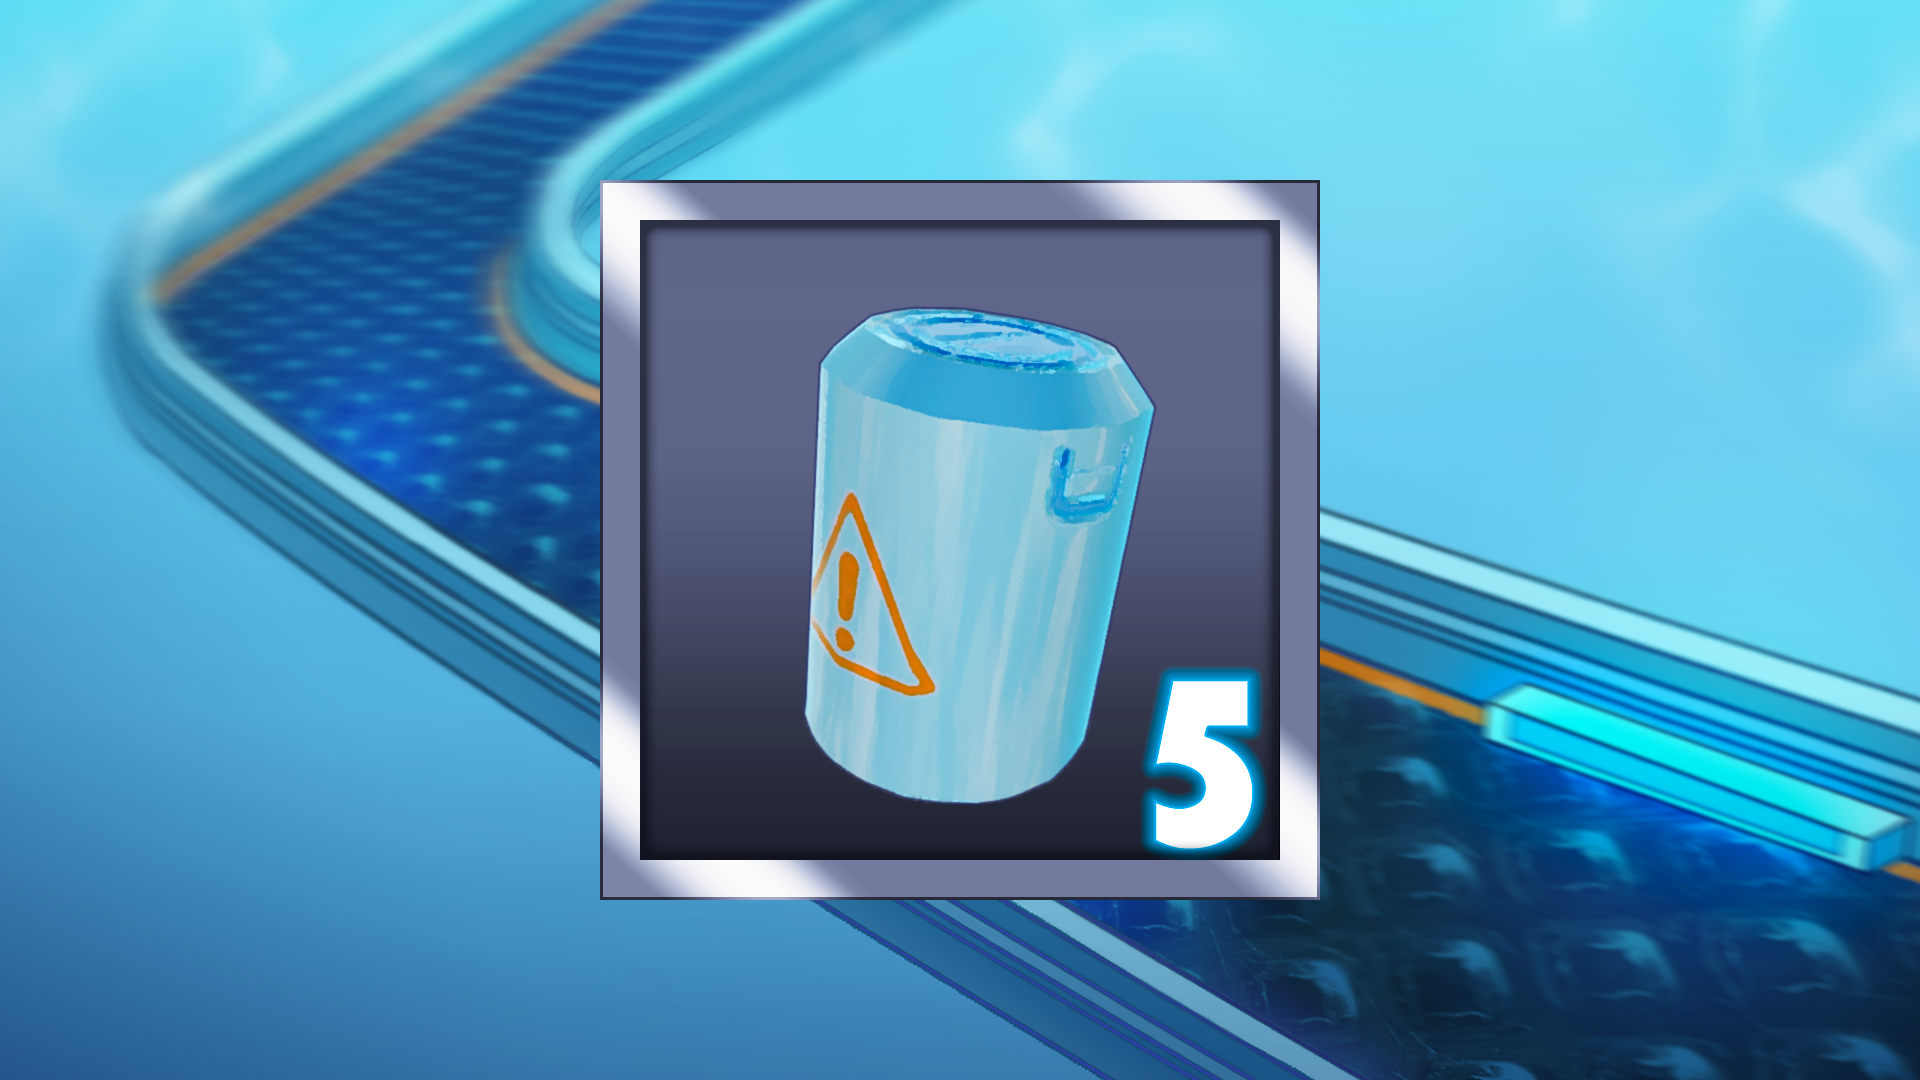 Icon for Barrel hater